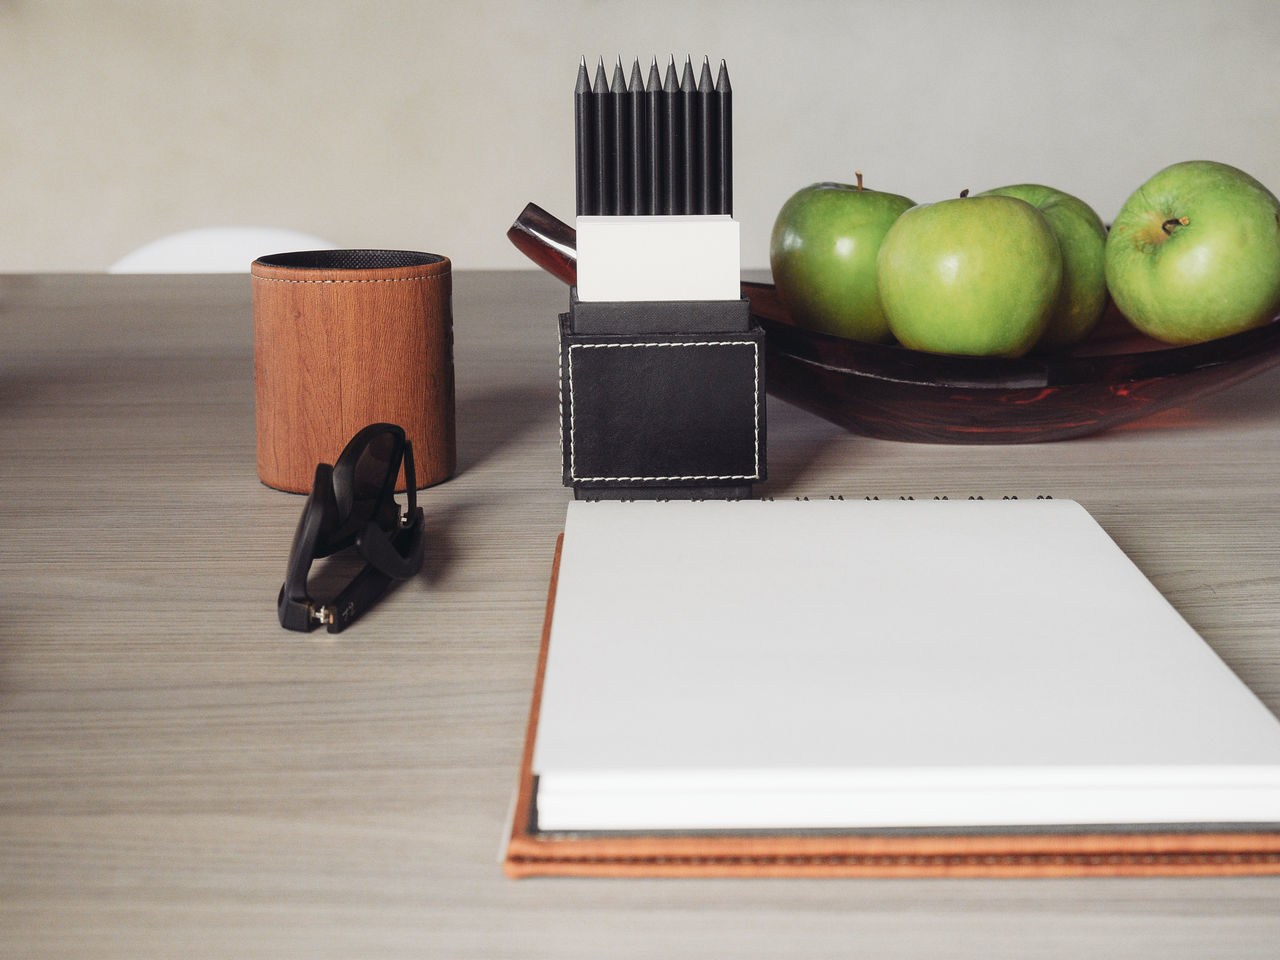 Beautiful stock photos of granny, Apple - Fruit, Art And Craft Equipment, Container, Copy Space